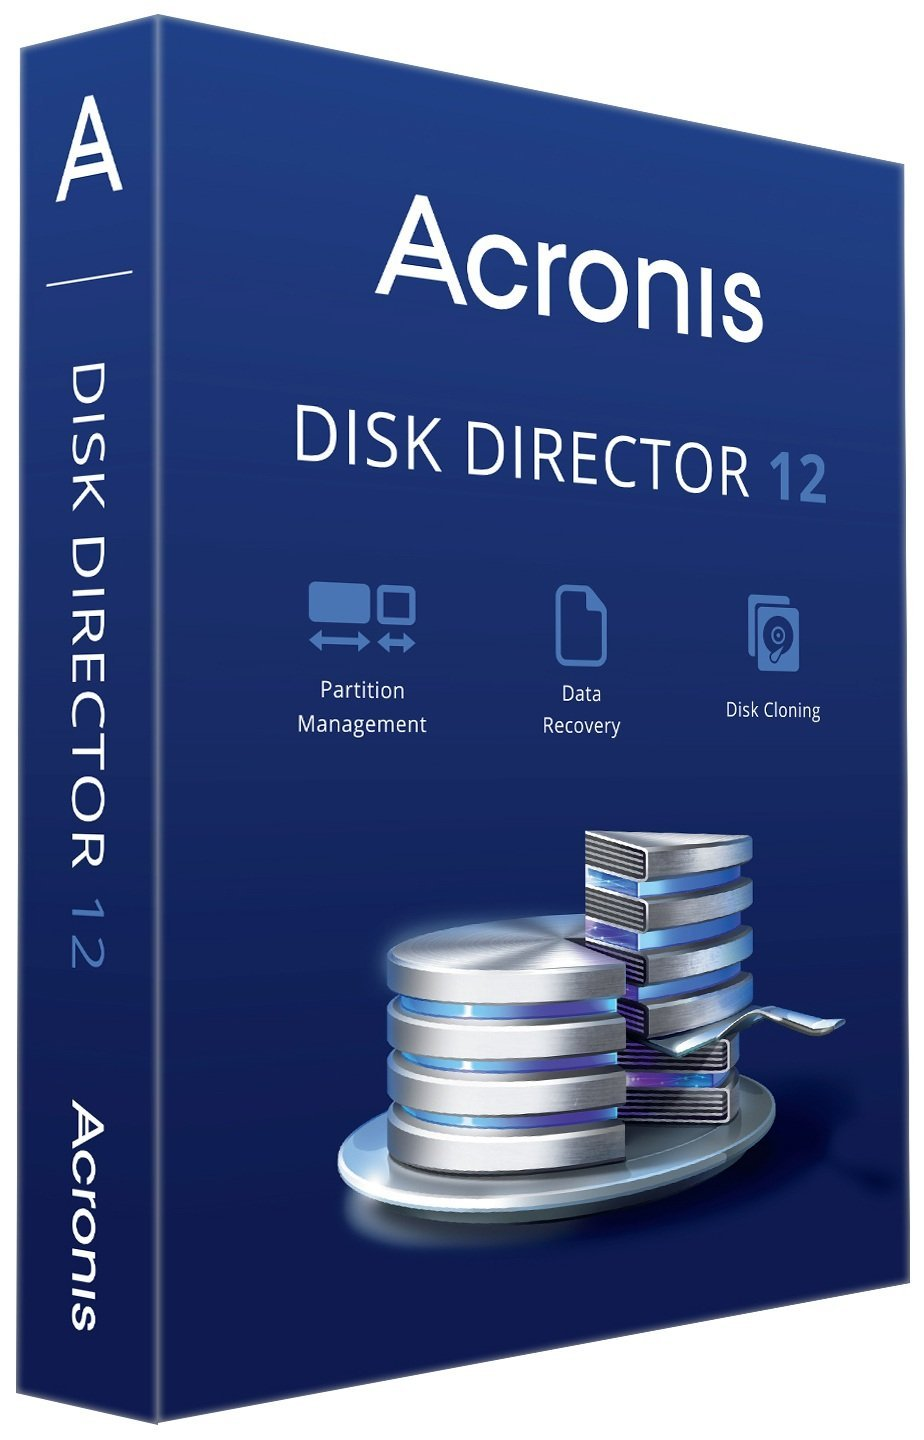 Acronis Disk Director 12 Upgrade